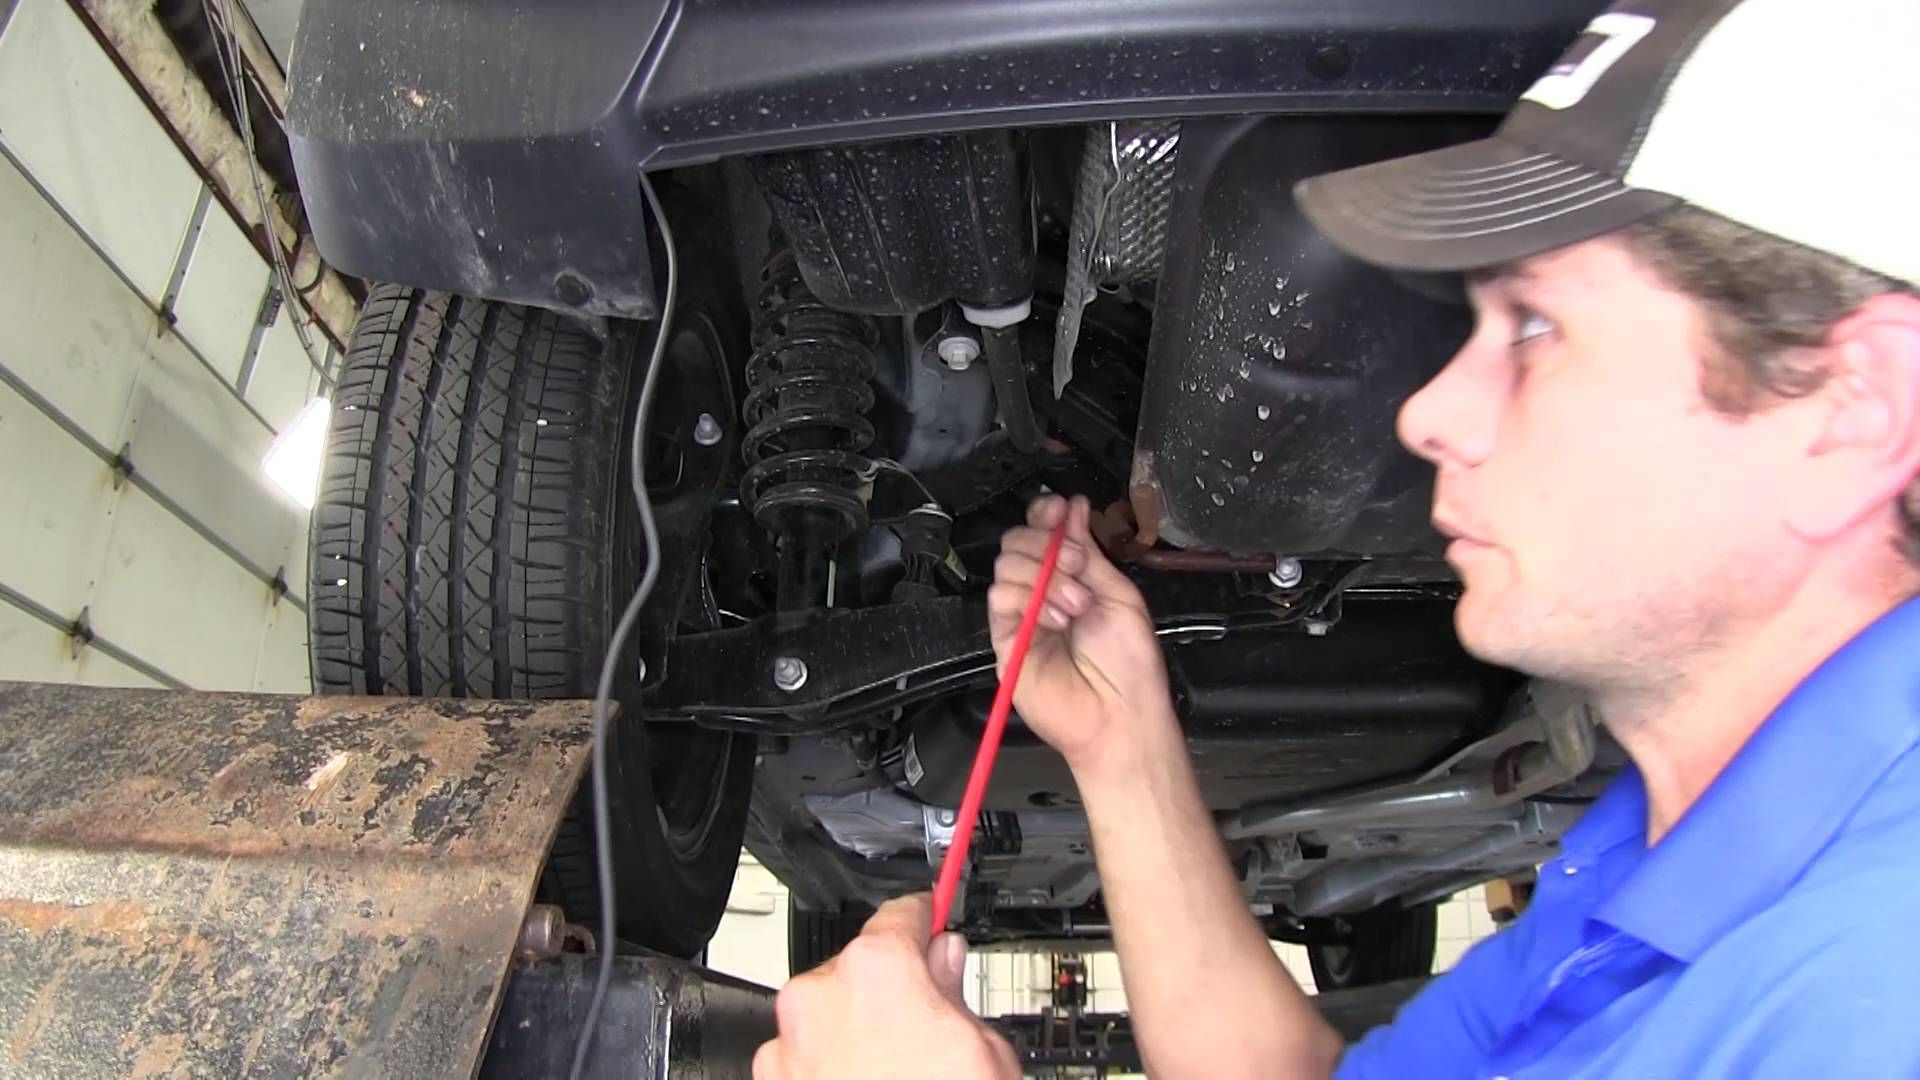 Jeep Patriot Wiring Harness Everything About Diagram Wire Installation Of A Trailer On 2015 Rh Pinterest Com